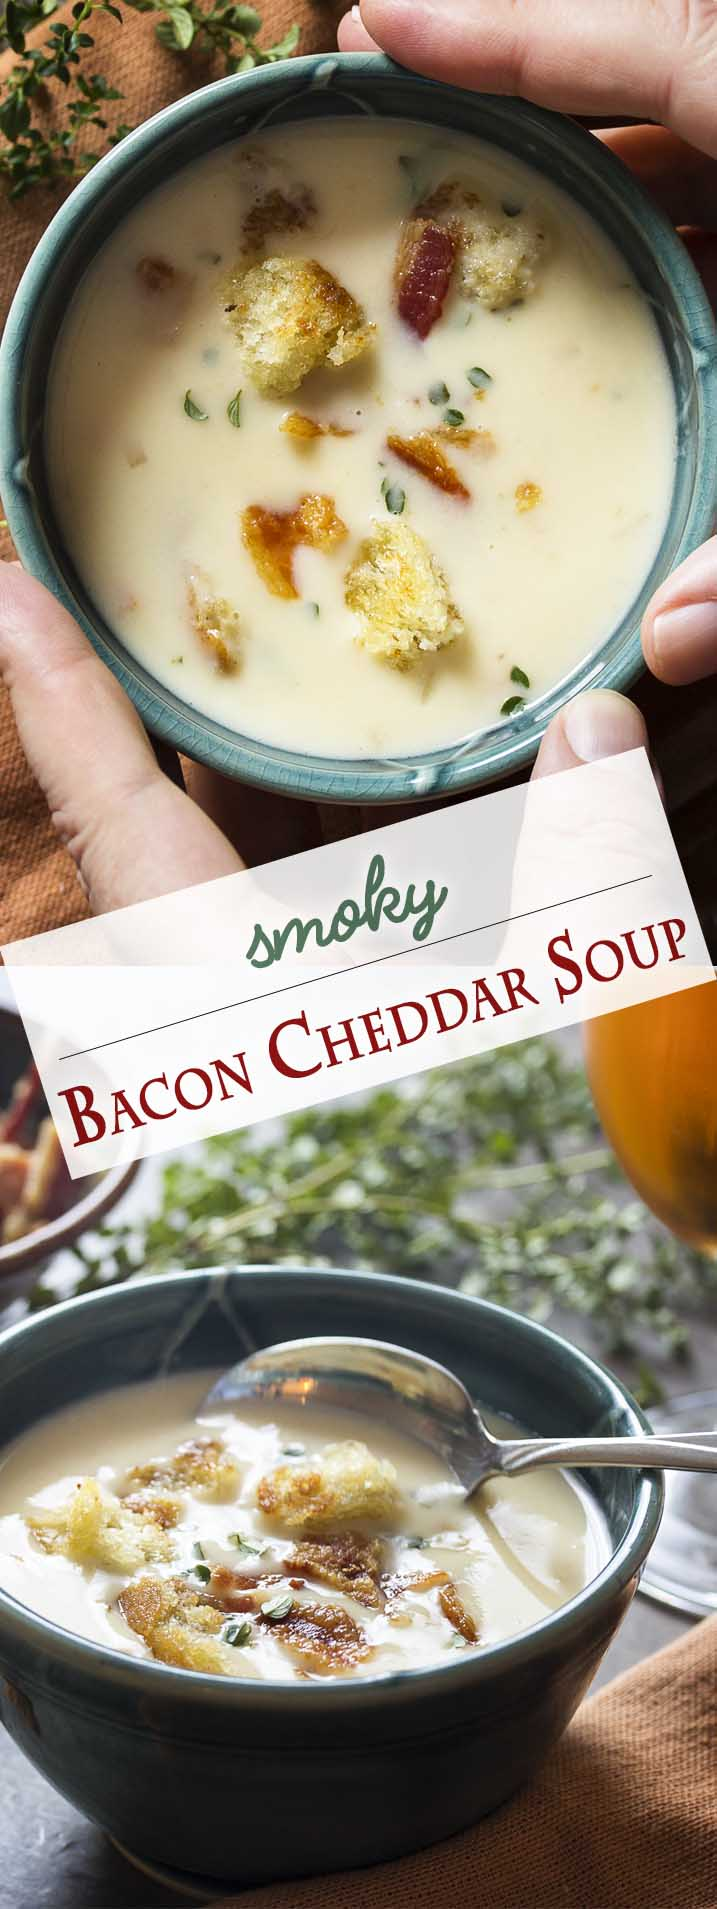 My bacon cheddar soup is a simple recipe which makes rich, creamy comfort food full of smoky flavor from the bacon and the smoked cheddar. | justalittlebitofbacon.com